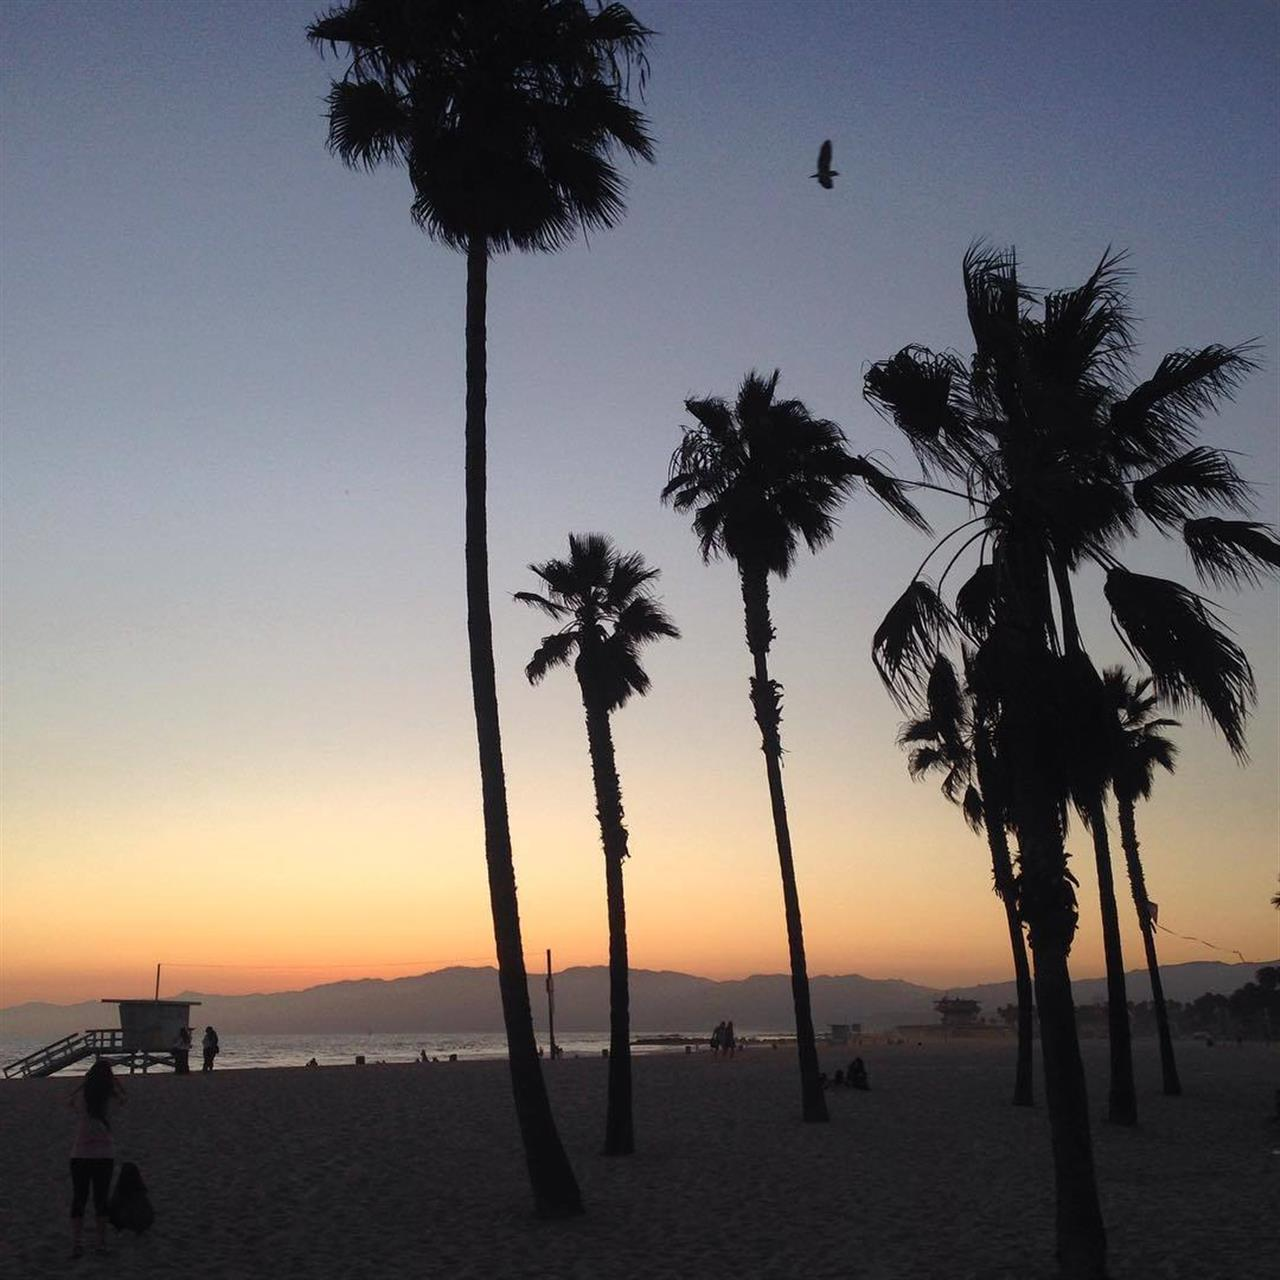 Venice Beach sunset, Los Angeles, CA